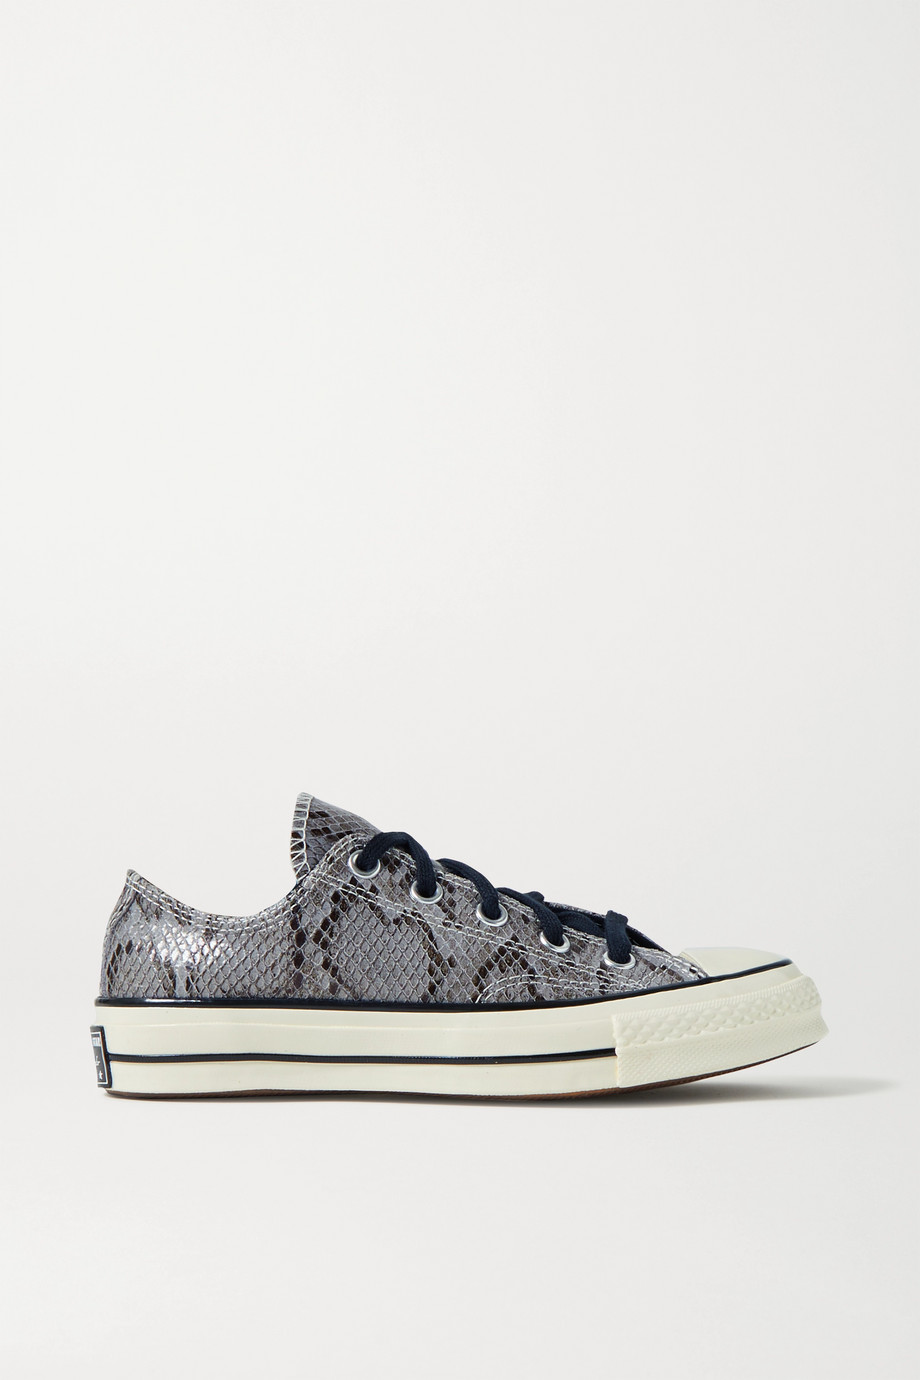 Converse Chuck Taylor All Star 70 snake-effect leather sneakers